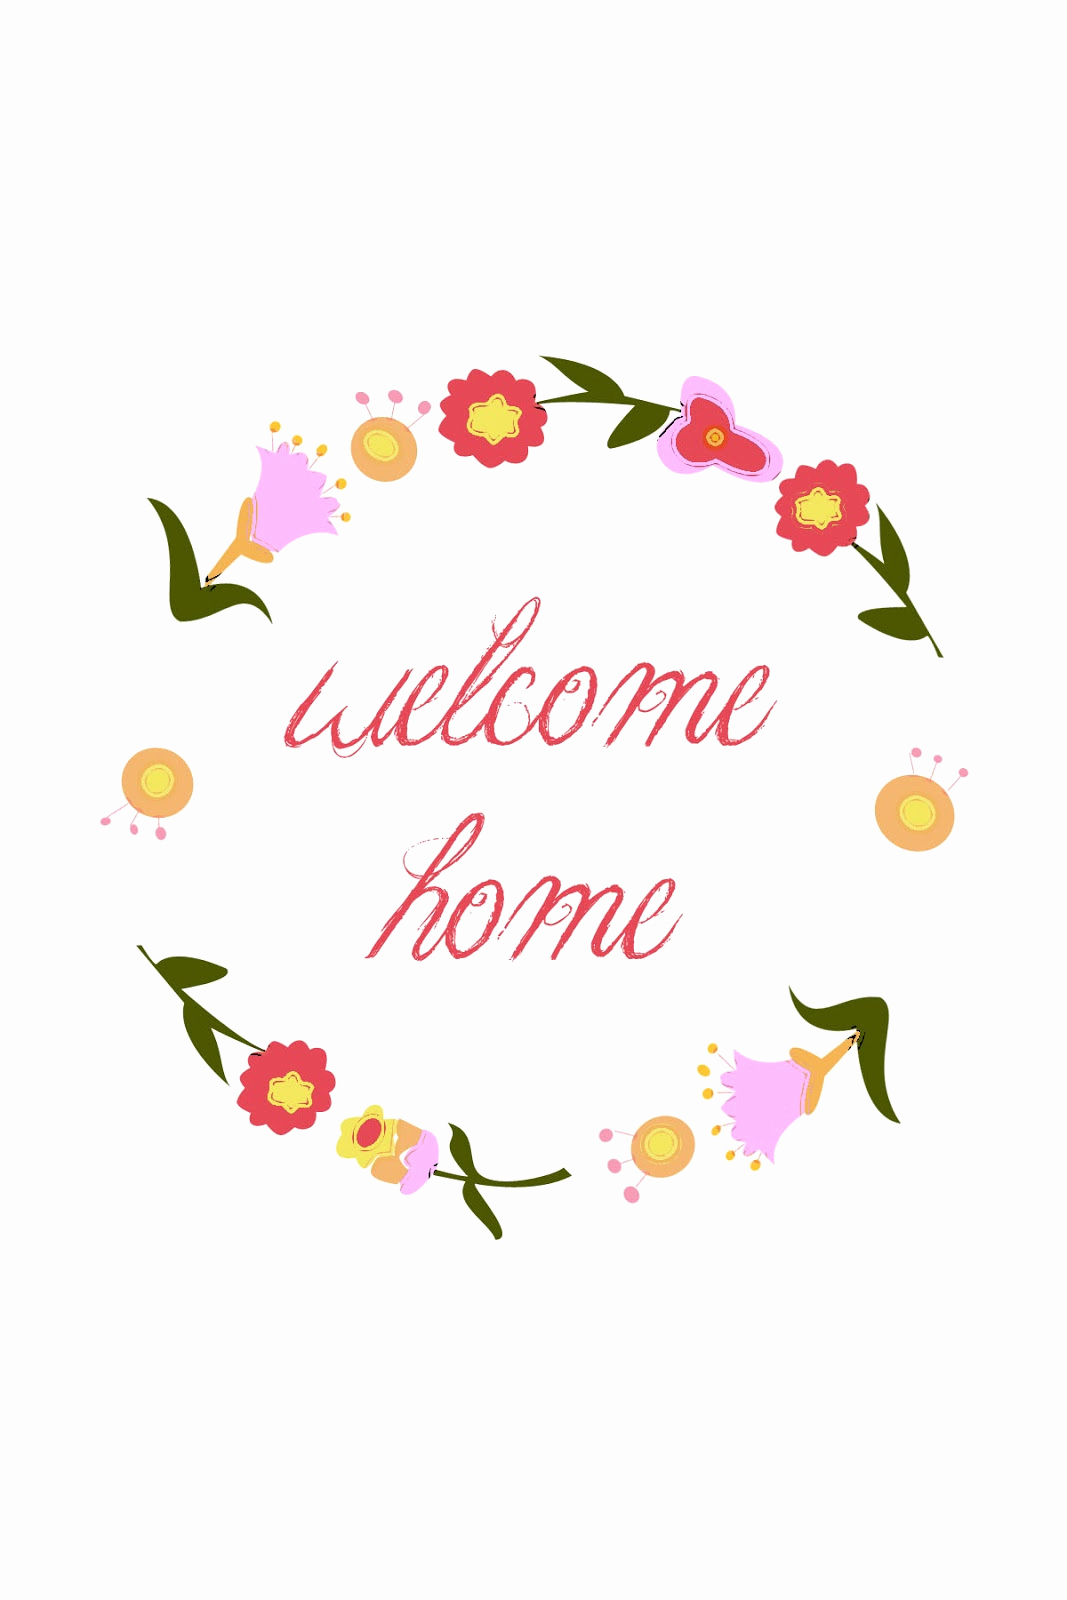 Free Printable Welcome Home Cards – Tduck.ca - Welcome Home Cards Free Printable